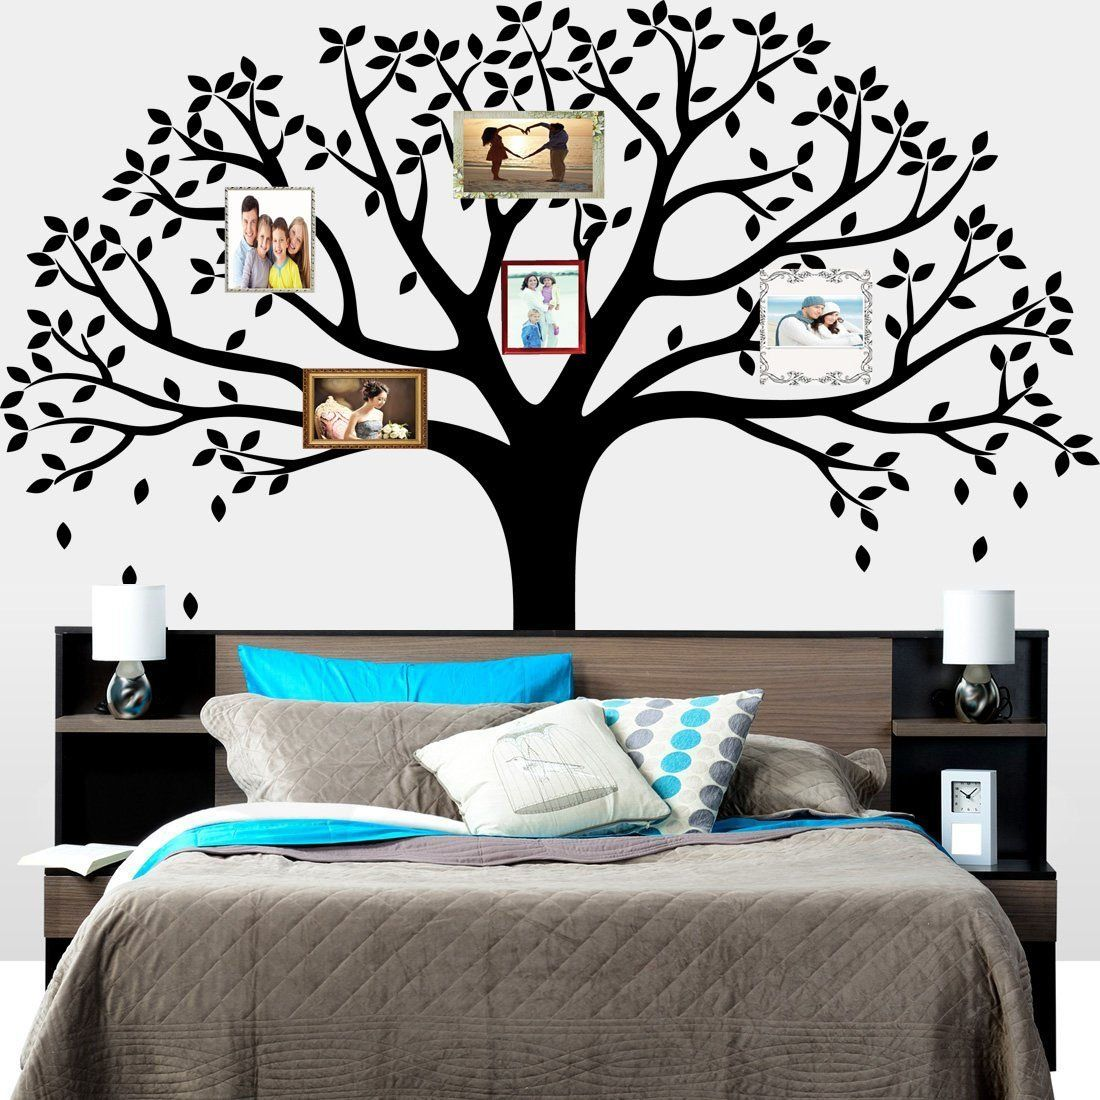 LUCKKYY® Large Family Photo Tree Wall Decor Wall Sticker Tree Branch Family  Like Branches On